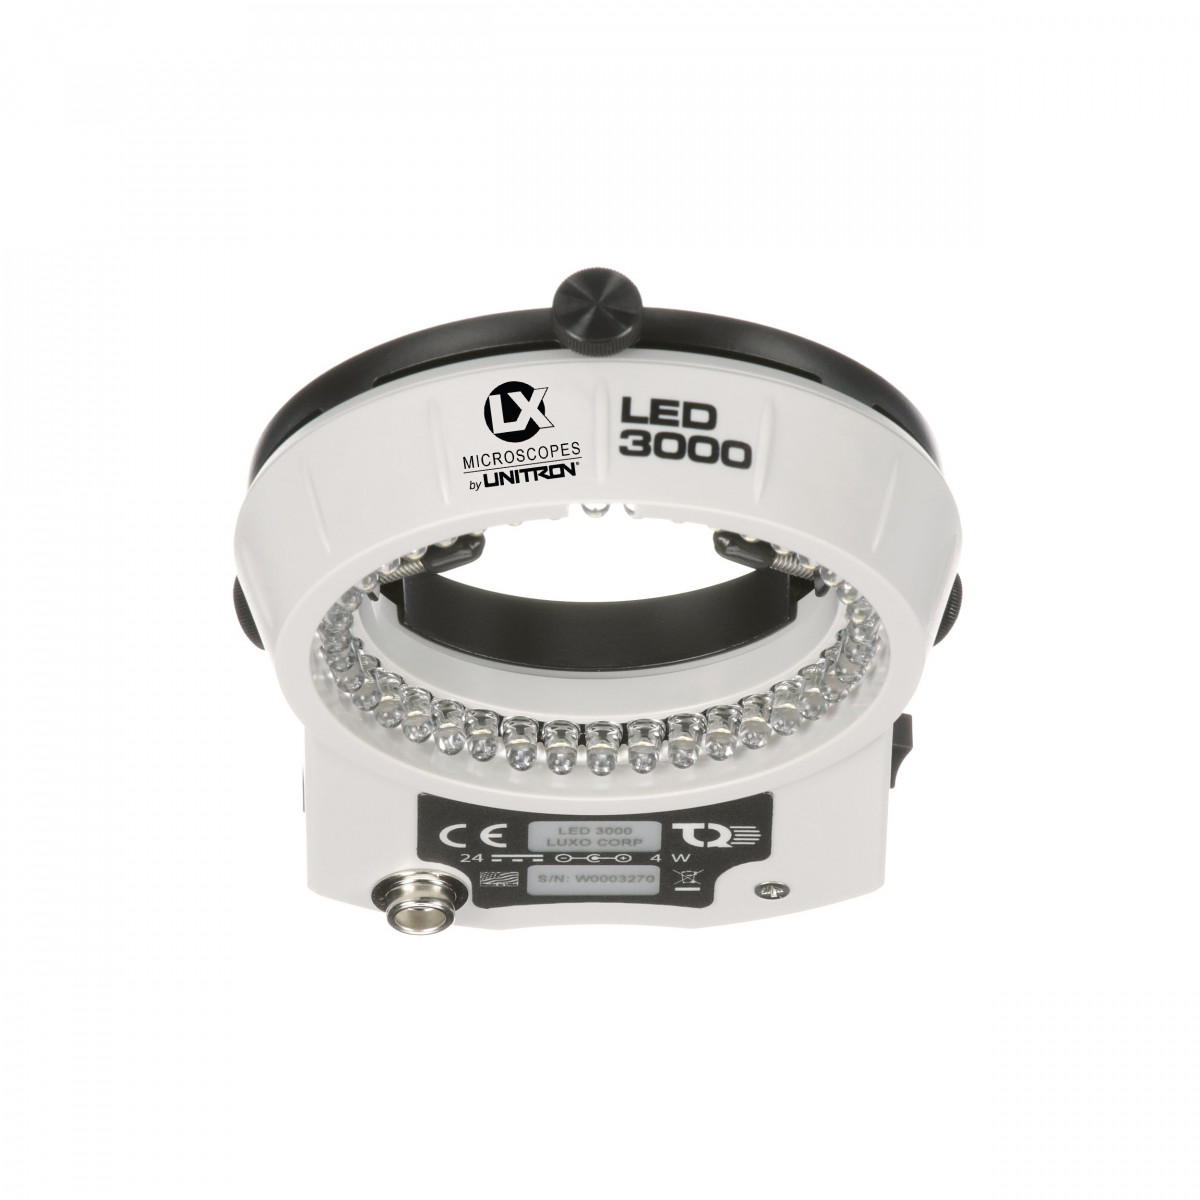 LED3000-PF, front